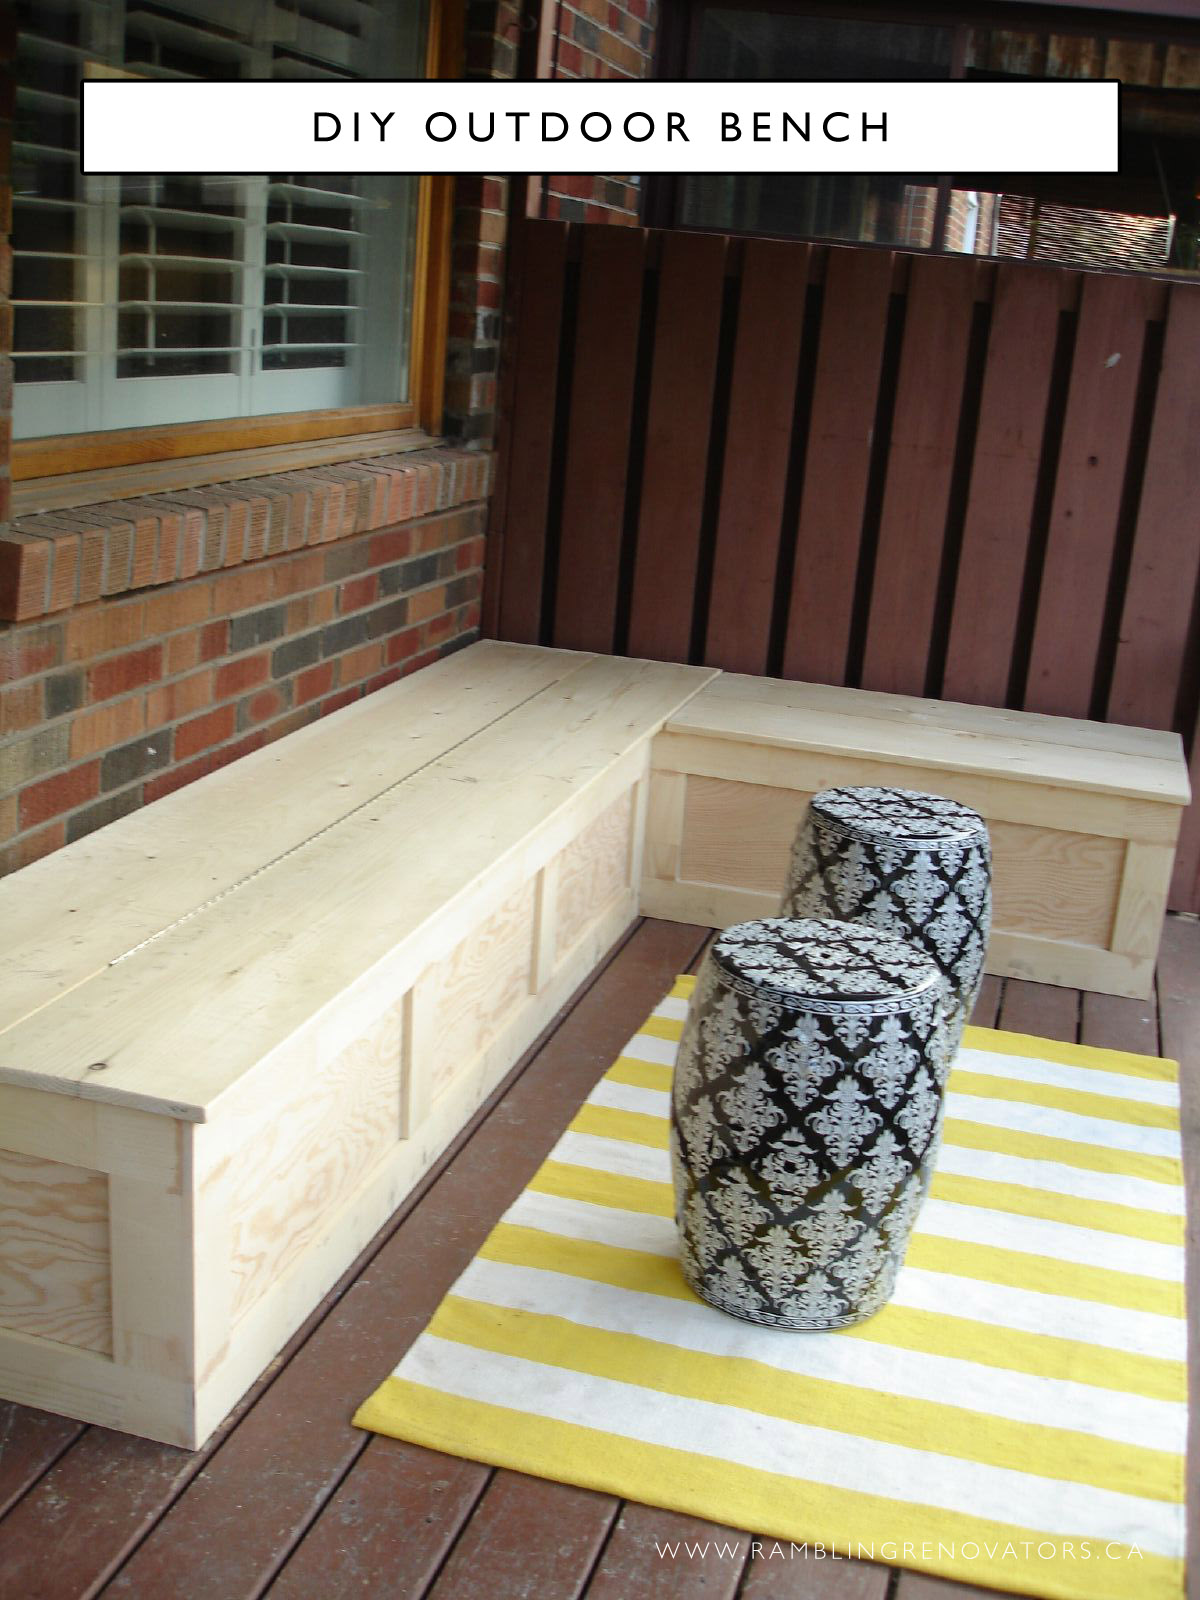 Enjoyable 25 Outdoor Bench Projects Defining The Concept Of Lamtechconsult Wood Chair Design Ideas Lamtechconsultcom